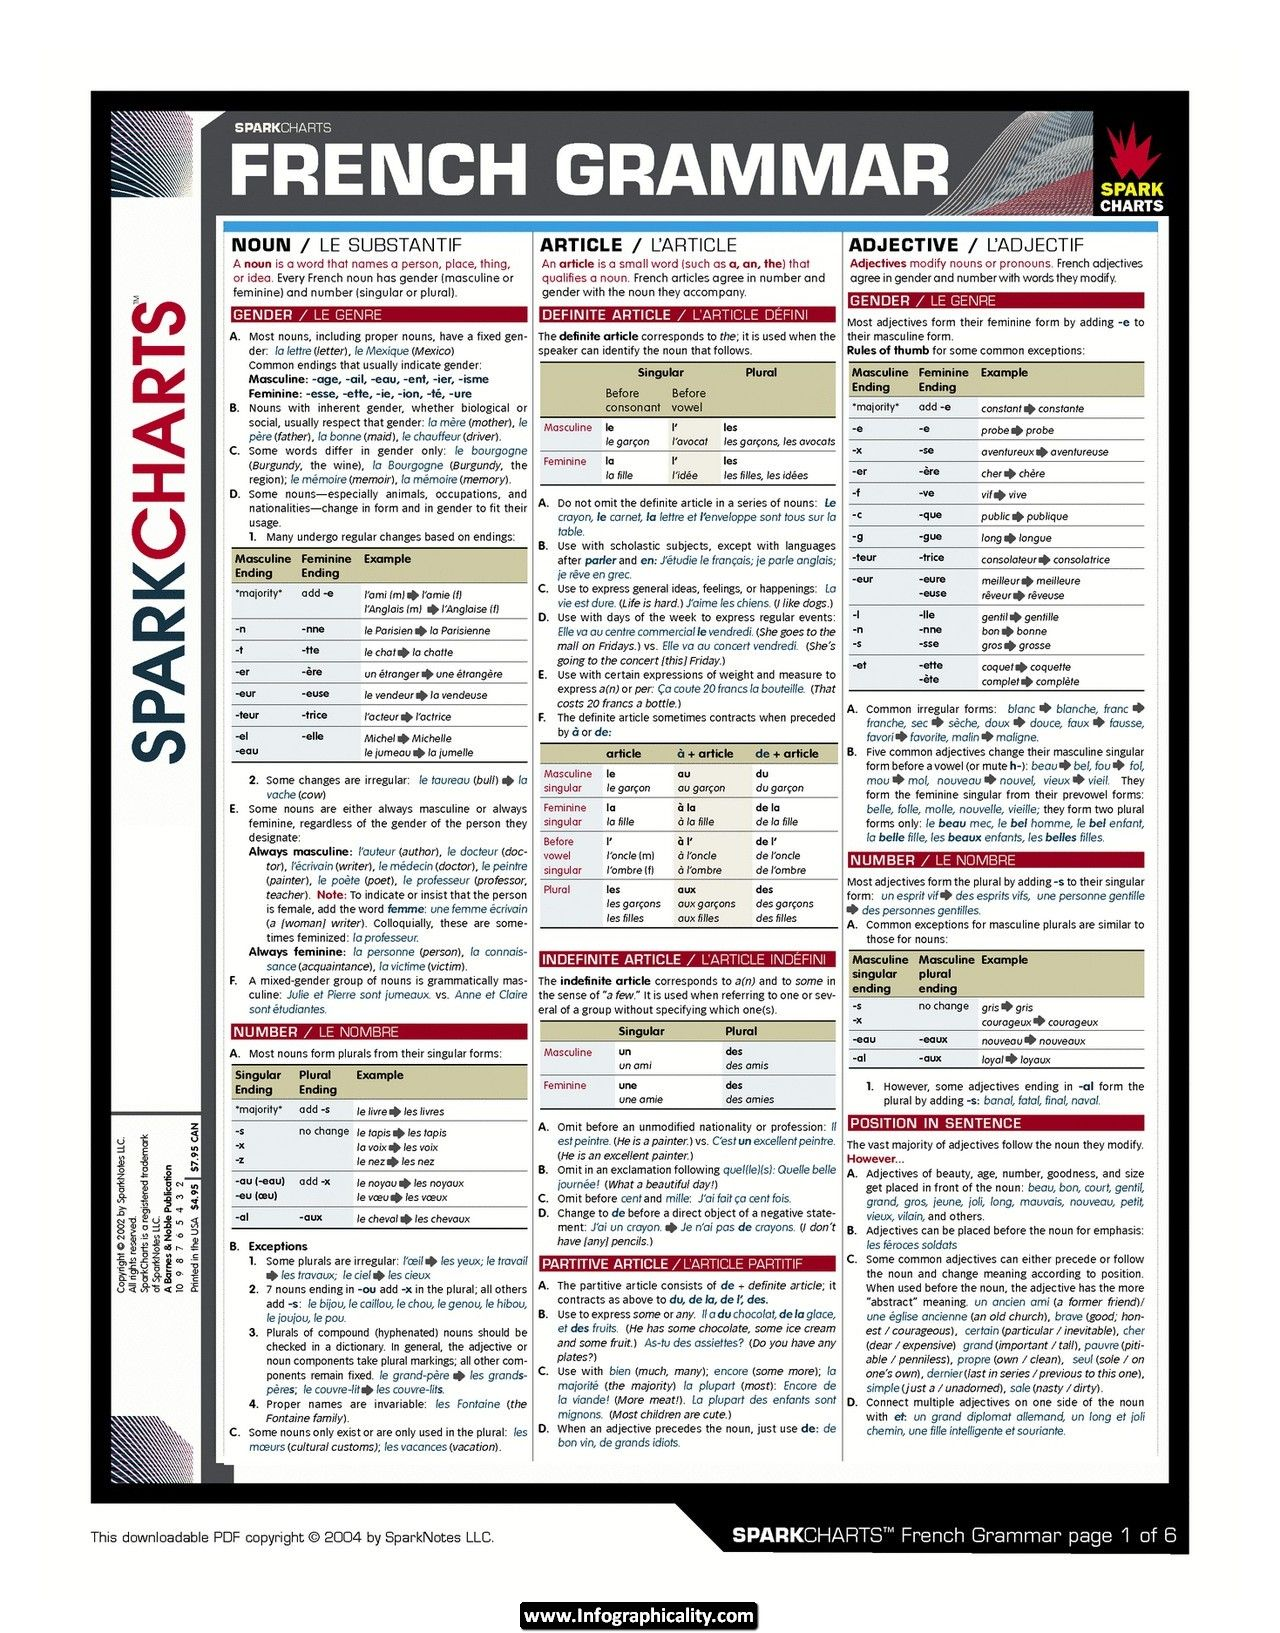 French Grammar Cheat Sheet